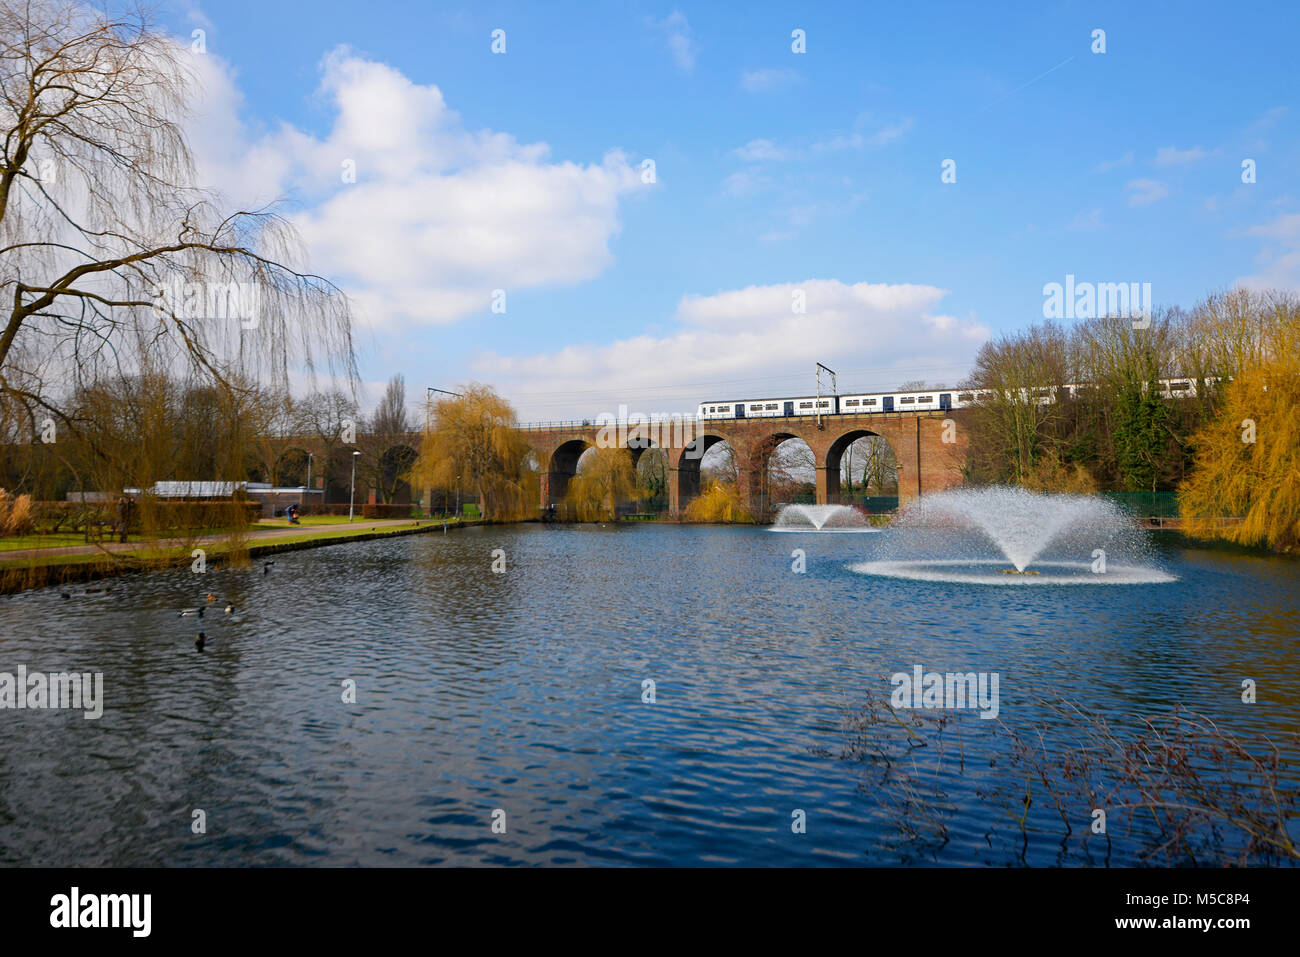 Greater Anglia Abellio electric multiple unit train crossing railway viaduct in Central Park, Chelmsford, Essex, - Stock Image